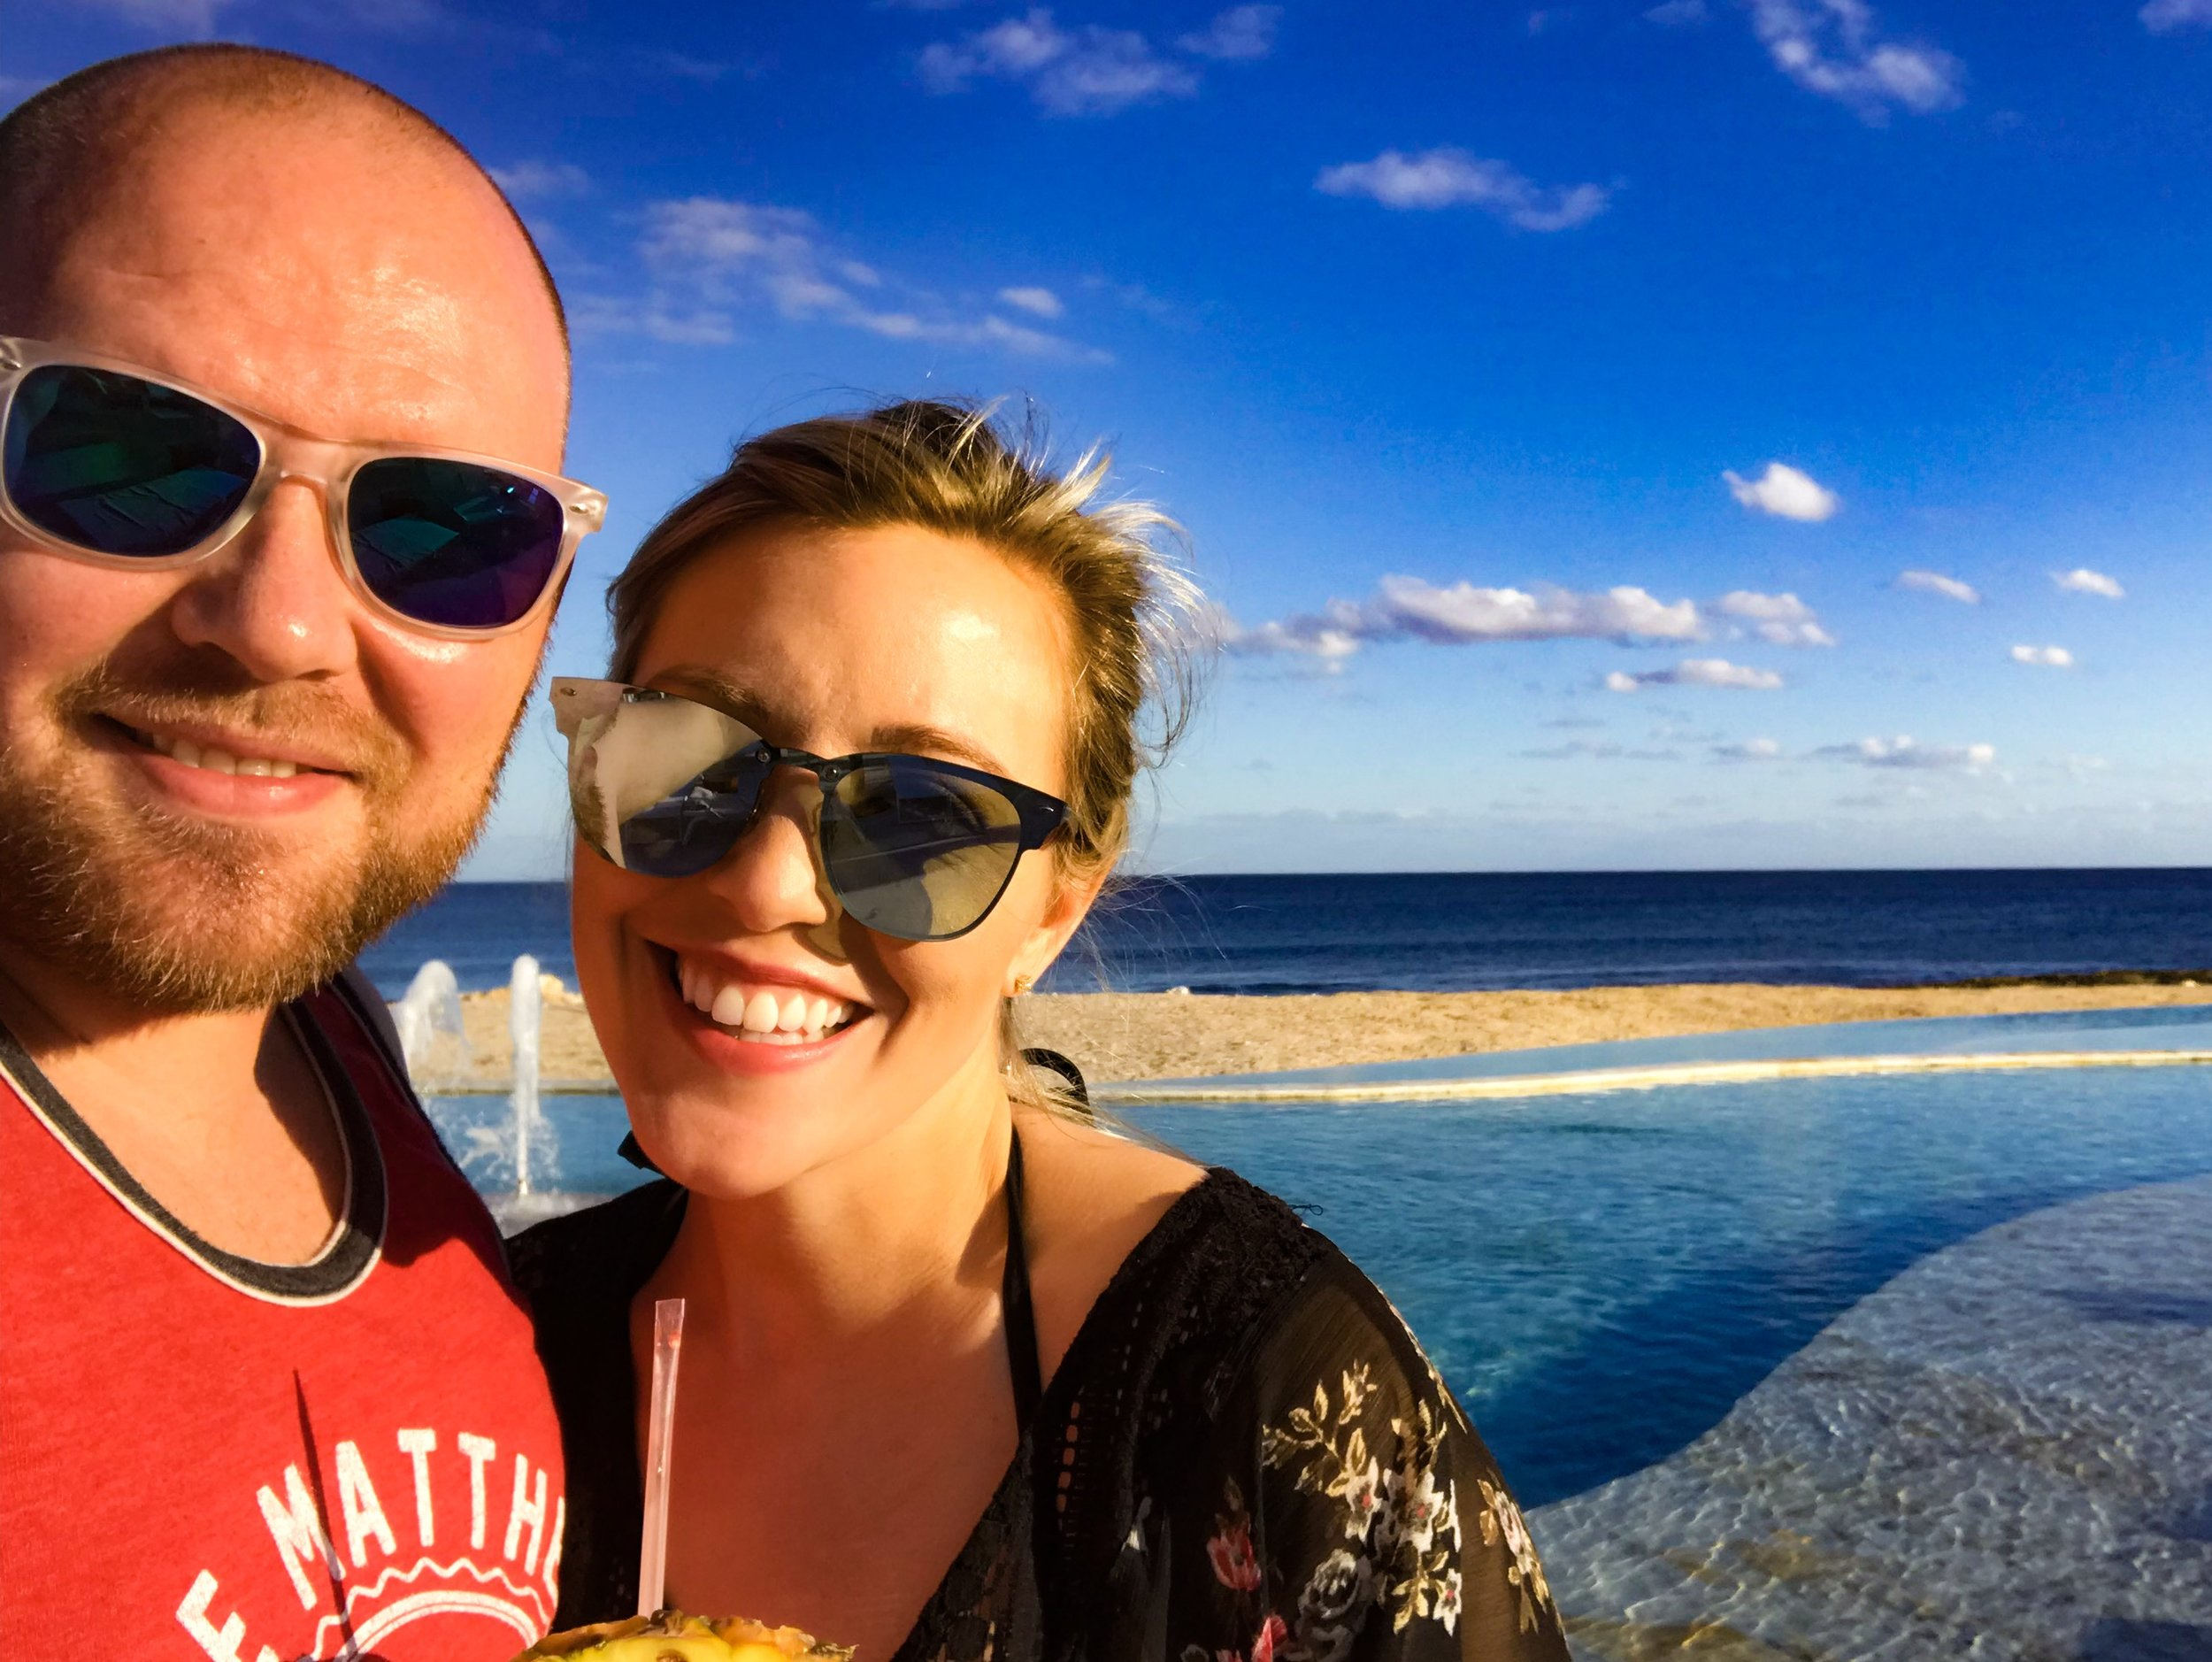 Jake and I on our honeymoon in Riviera Maya last year. To read more about our trip,  click here